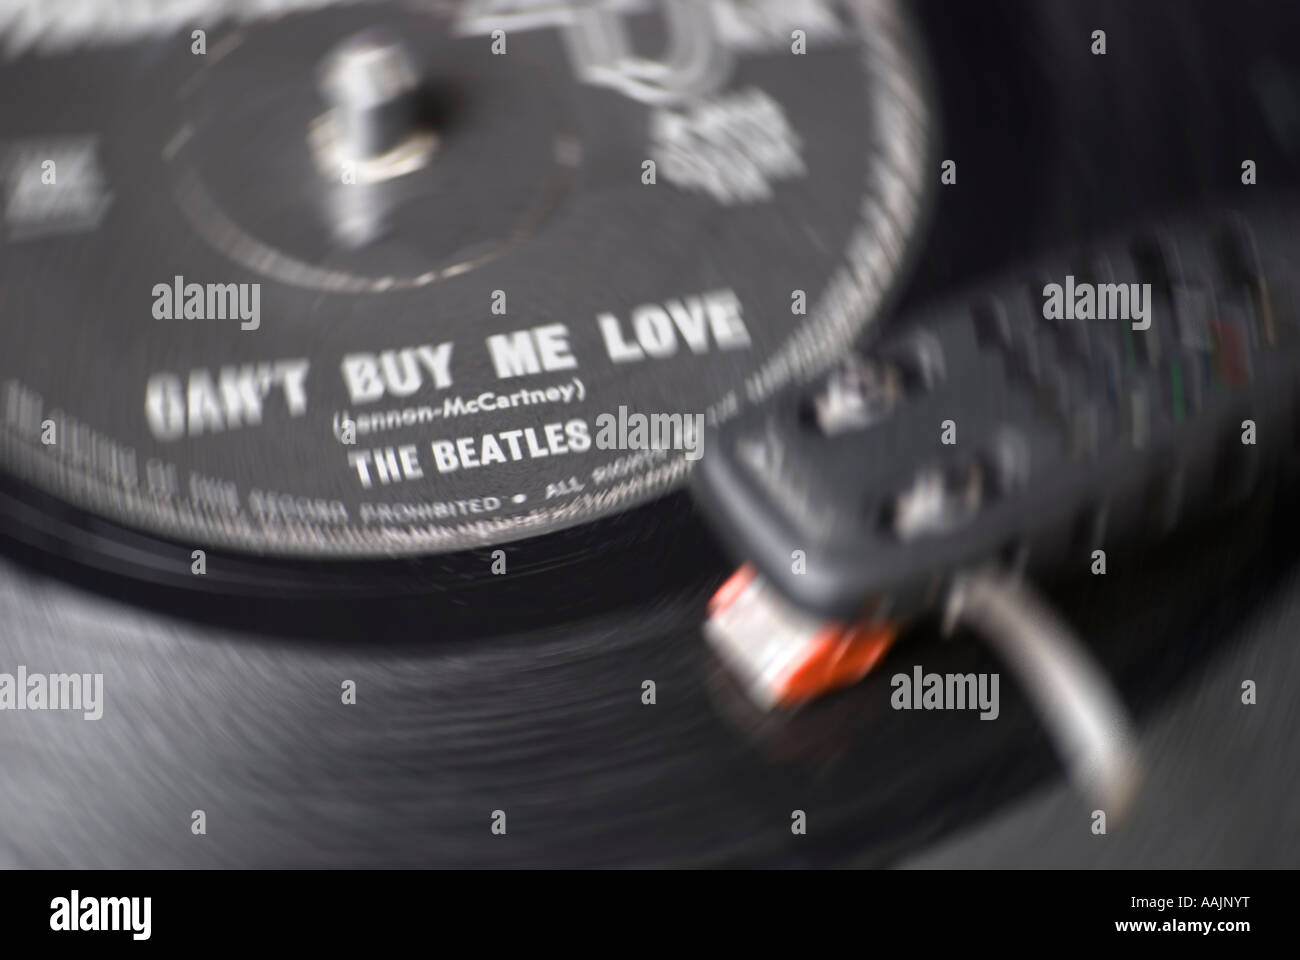 Beatles 45 rpm record of Can t Buy Me Love - Stock Image